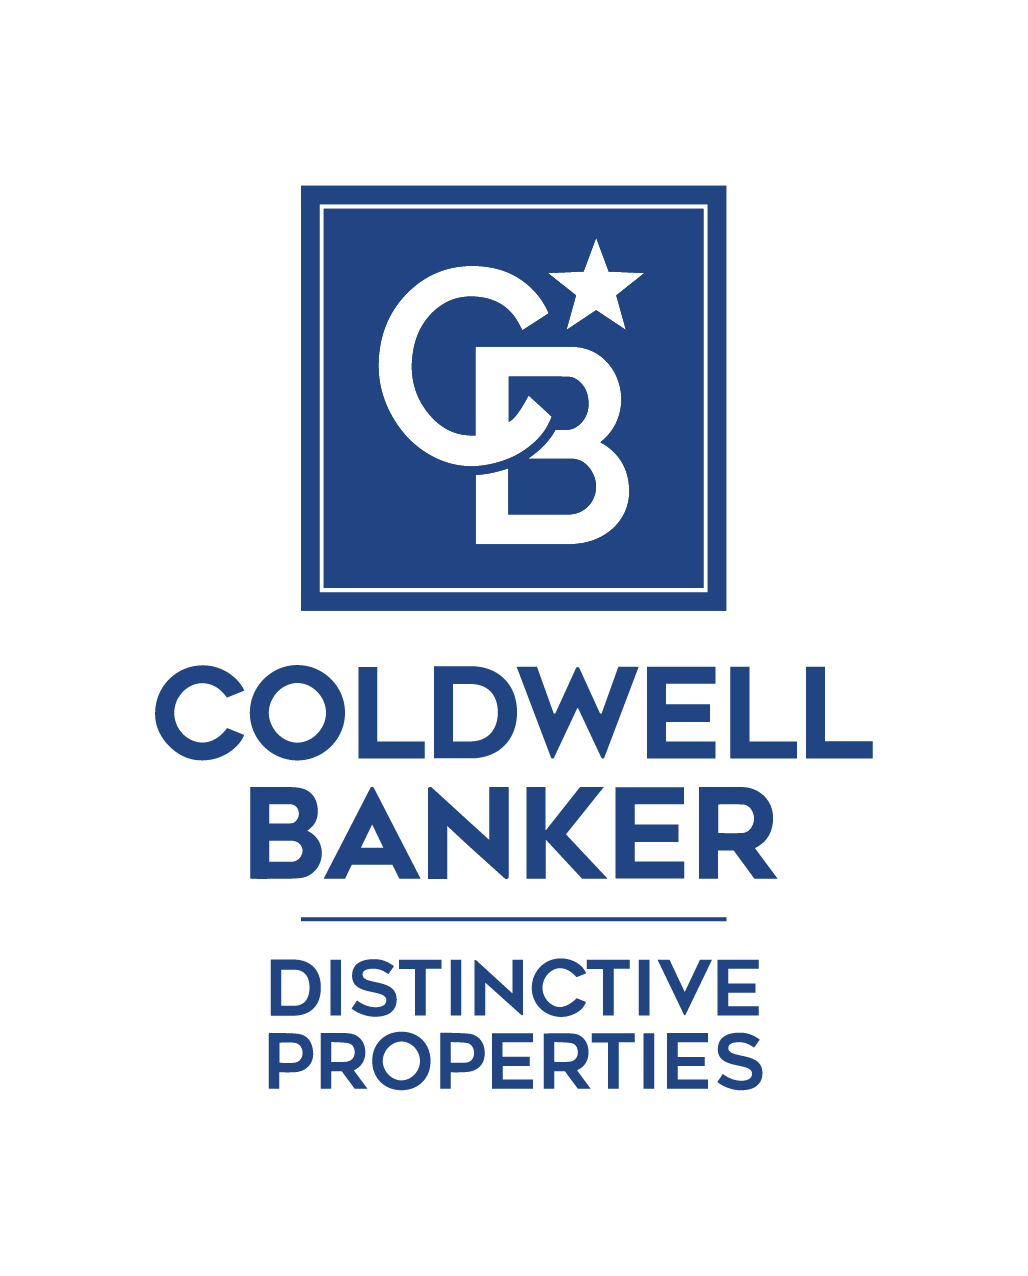 Bobby Hermosillo - Coldwell Banker Distinctive Properties Logo